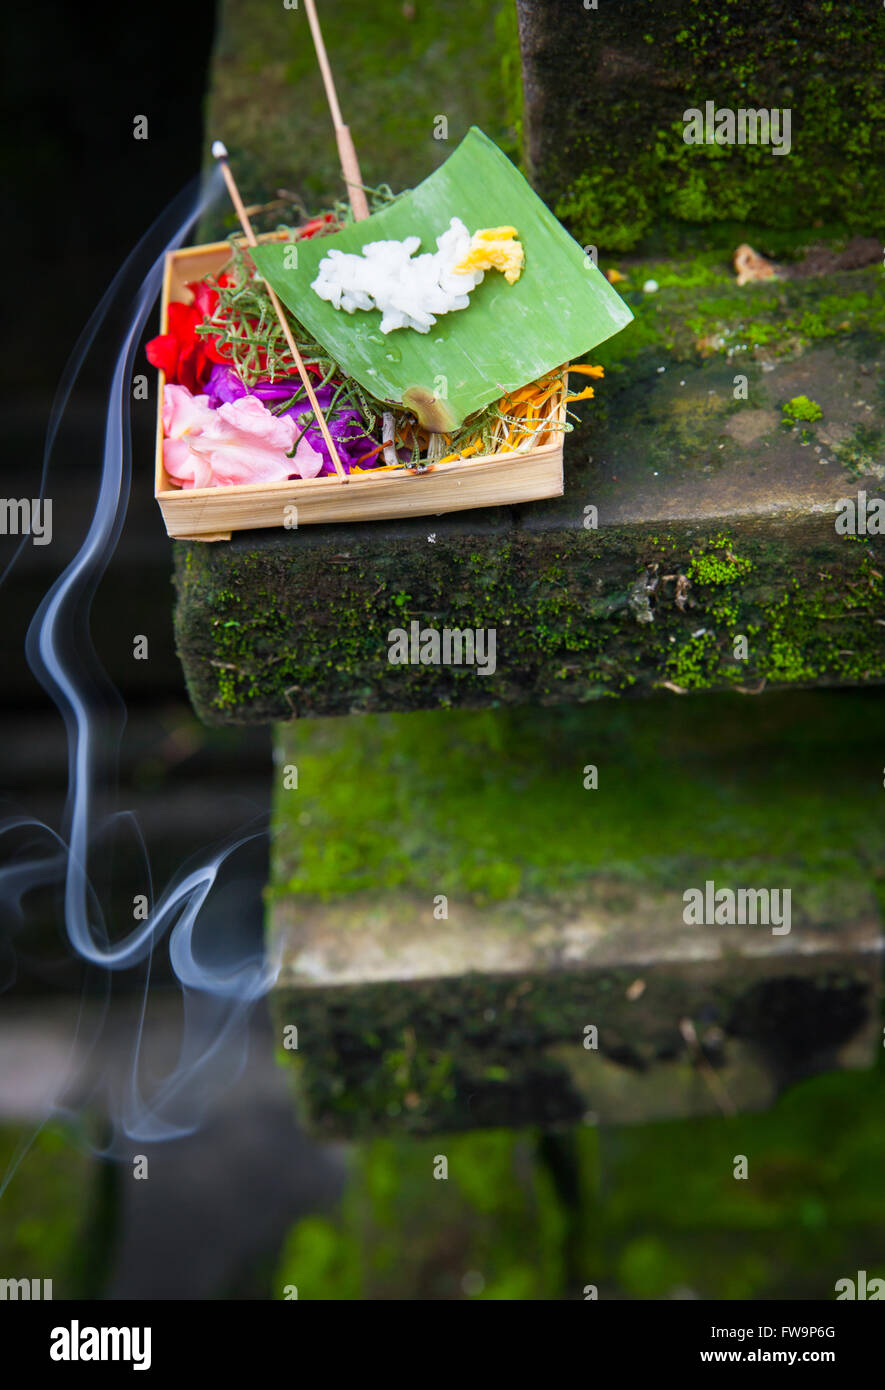 Box with traditional balinese morning offerings or Canang sari, Ubud, Bali, Indonesia Stock Photo